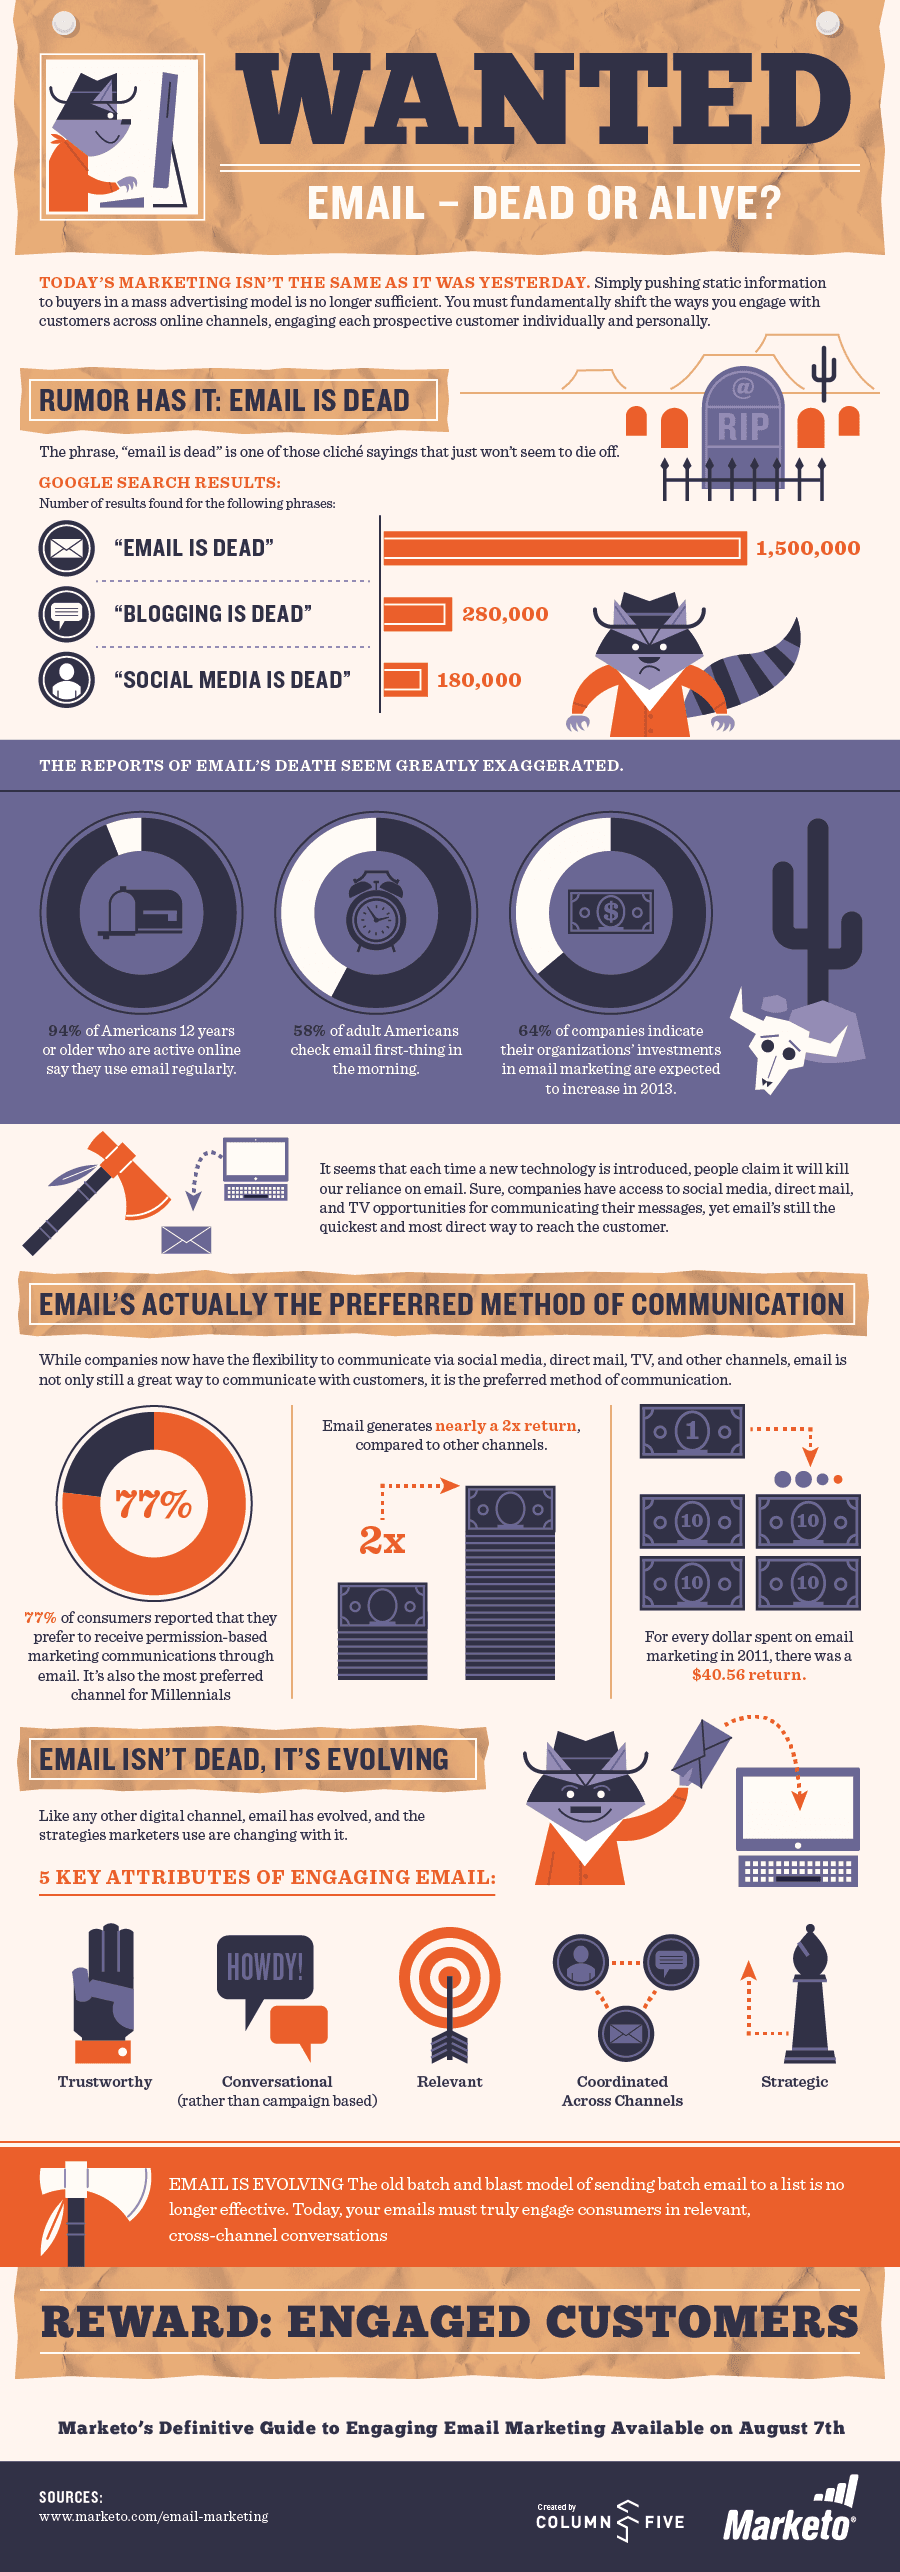 The state of email marketing: 94% of people 12 and older say they use email, and 77% of consumers saying its their preferred method of communication